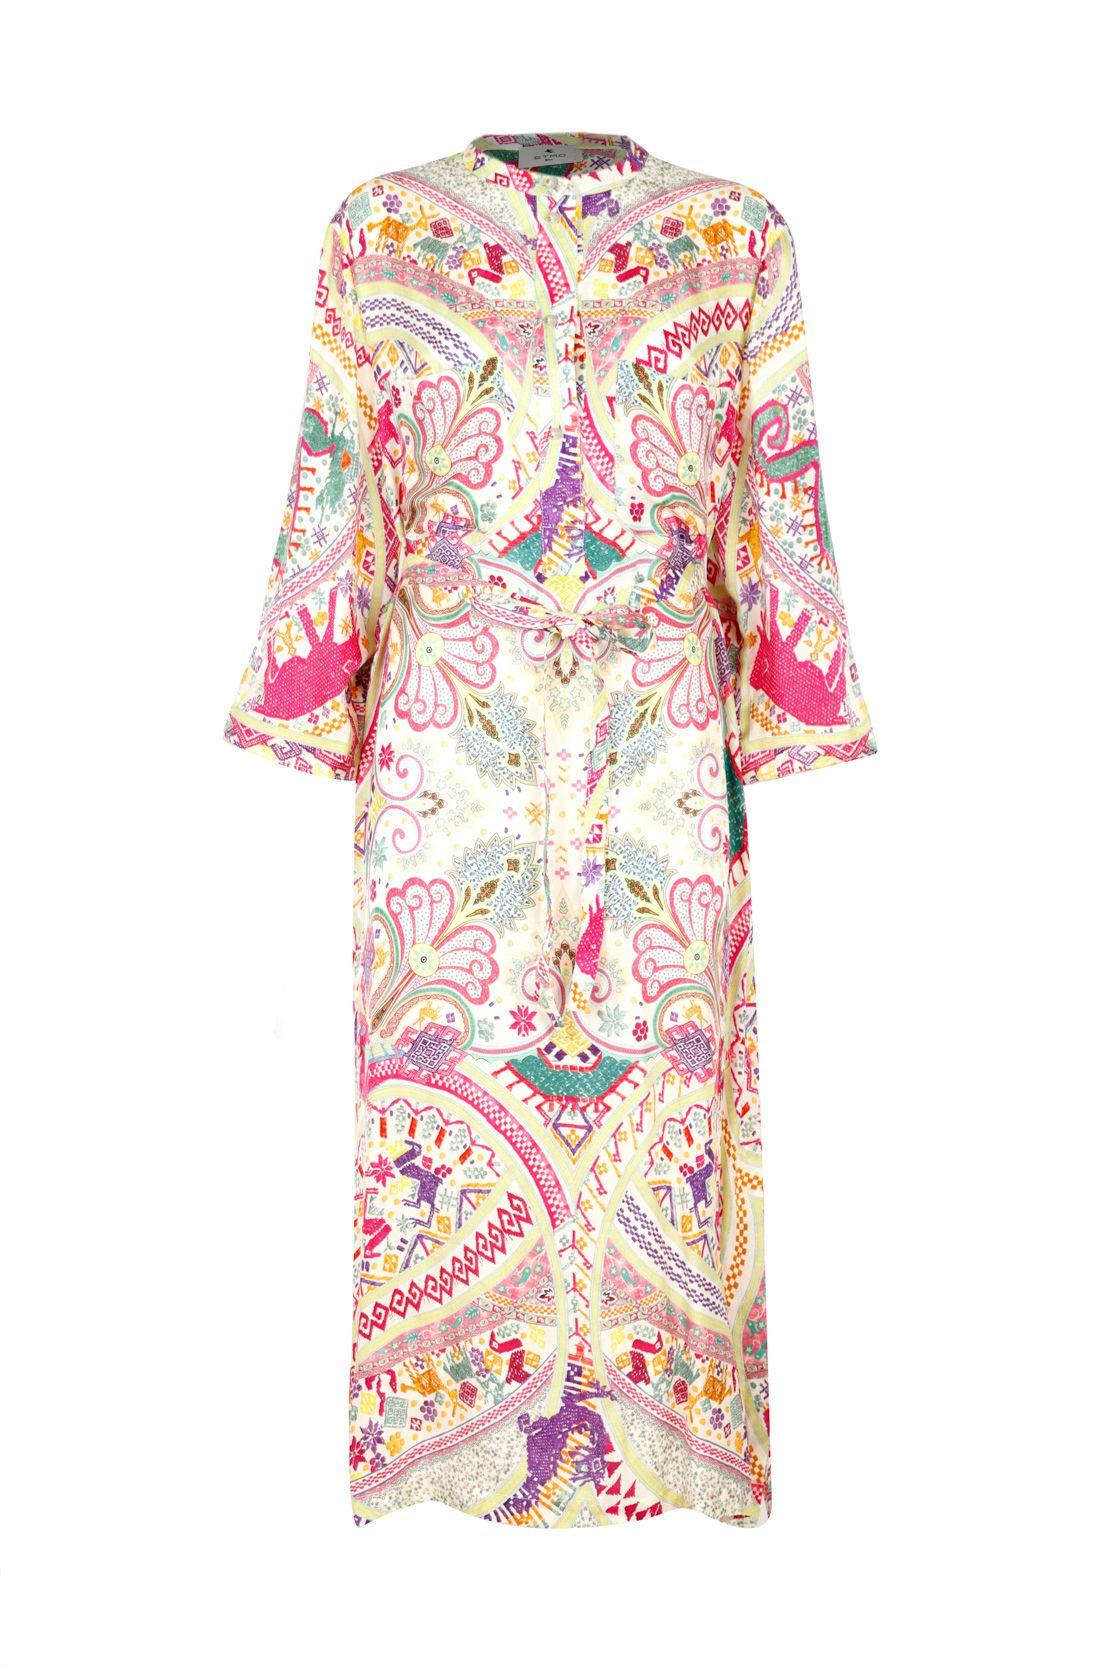 Etro ETRO WOMEN'S MULTICOLOR VISCOSE DRESS